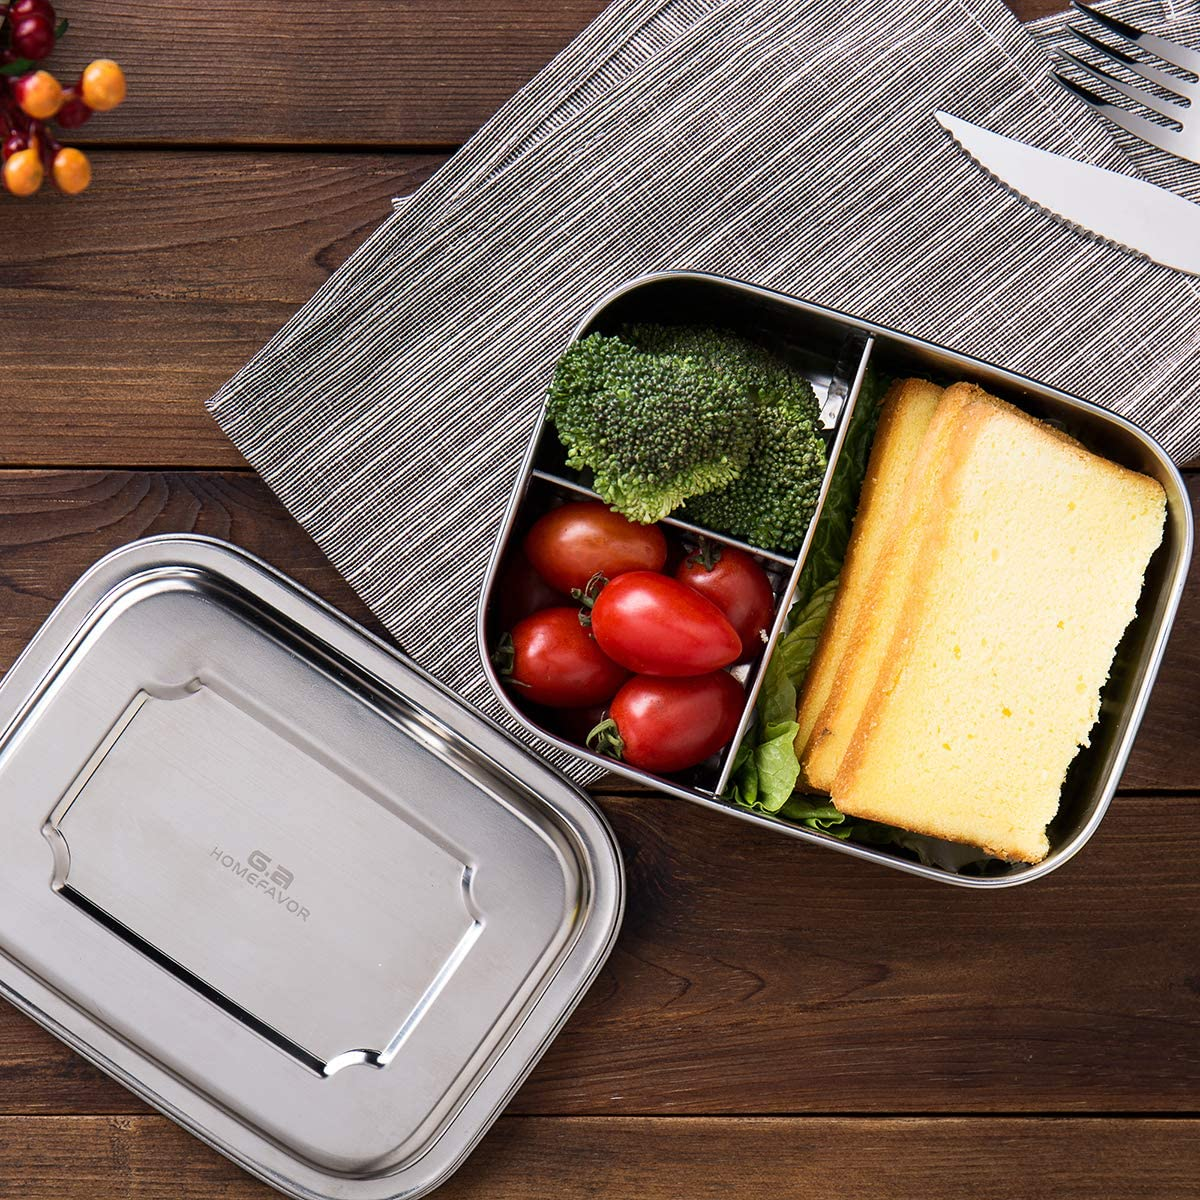 All Stainless 1000ML Metal Lunch Box for Kids or Adults- BPA-Free-Dishwasher Safe Stainless Lid G.a HOMEFAVOR Divided Stainless Steel Bento Lunch Box Containers with 3 Compartments Design